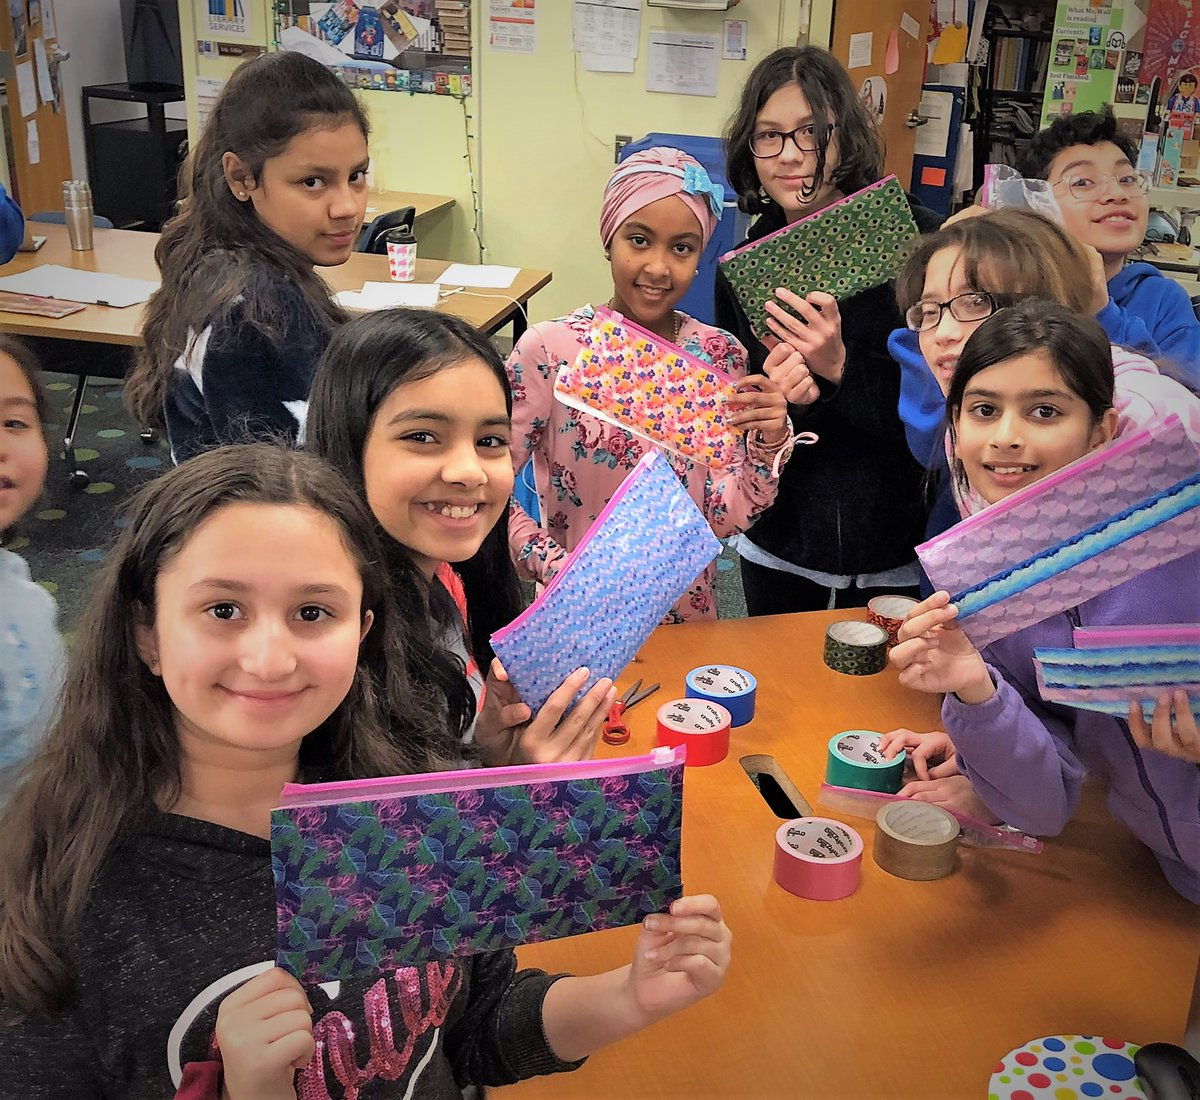 Jefferson students creating pencil pouches for holiday gifts and personal use. <a target='_blank' href='http://twitter.com/APSLibrarians'>@APSLibrarians</a>, <a target='_blank' href='http://twitter.com/JeffersonReads'>@JeffersonReads</a>,   <a target='_blank' href='http://twitter.com/ArlingtonVALib'>@ArlingtonVALib</a>  <a target='_blank' href='http://search.twitter.com/search?q=tjmsrocks'><a target='_blank' href='https://twitter.com/hashtag/tjmsrocks?src=hash'>#tjmsrocks</a></a> <a target='_blank' href='http://search.twitter.com/search?q=librarycraft'><a target='_blank' href='https://twitter.com/hashtag/librarycraft?src=hash'>#librarycraft</a></a> <a target='_blank' href='http://search.twitter.com/search?q=APSisawesome'><a target='_blank' href='https://twitter.com/hashtag/APSisawesome?src=hash'>#APSisawesome</a></a> <a target='_blank' href='http://search.twitter.com/search?q=APSPhotooftheWeek'><a target='_blank' href='https://twitter.com/hashtag/APSPhotooftheWeek?src=hash'>#APSPhotooftheWeek</a></a> <a target='_blank' href='https://t.co/yesnRjaDlf'>https://t.co/yesnRjaDlf</a>